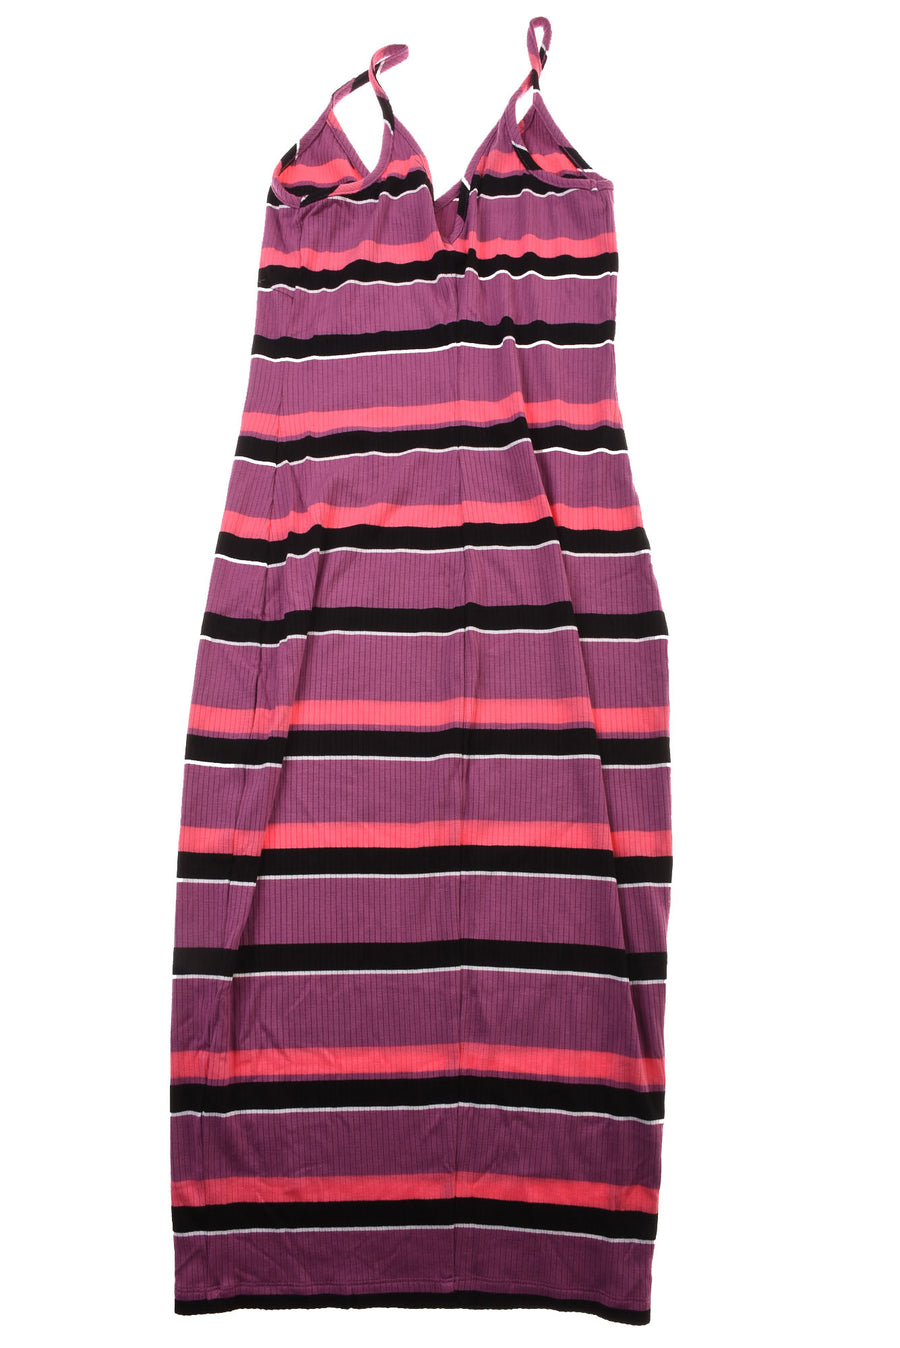 Women's Dress By Express